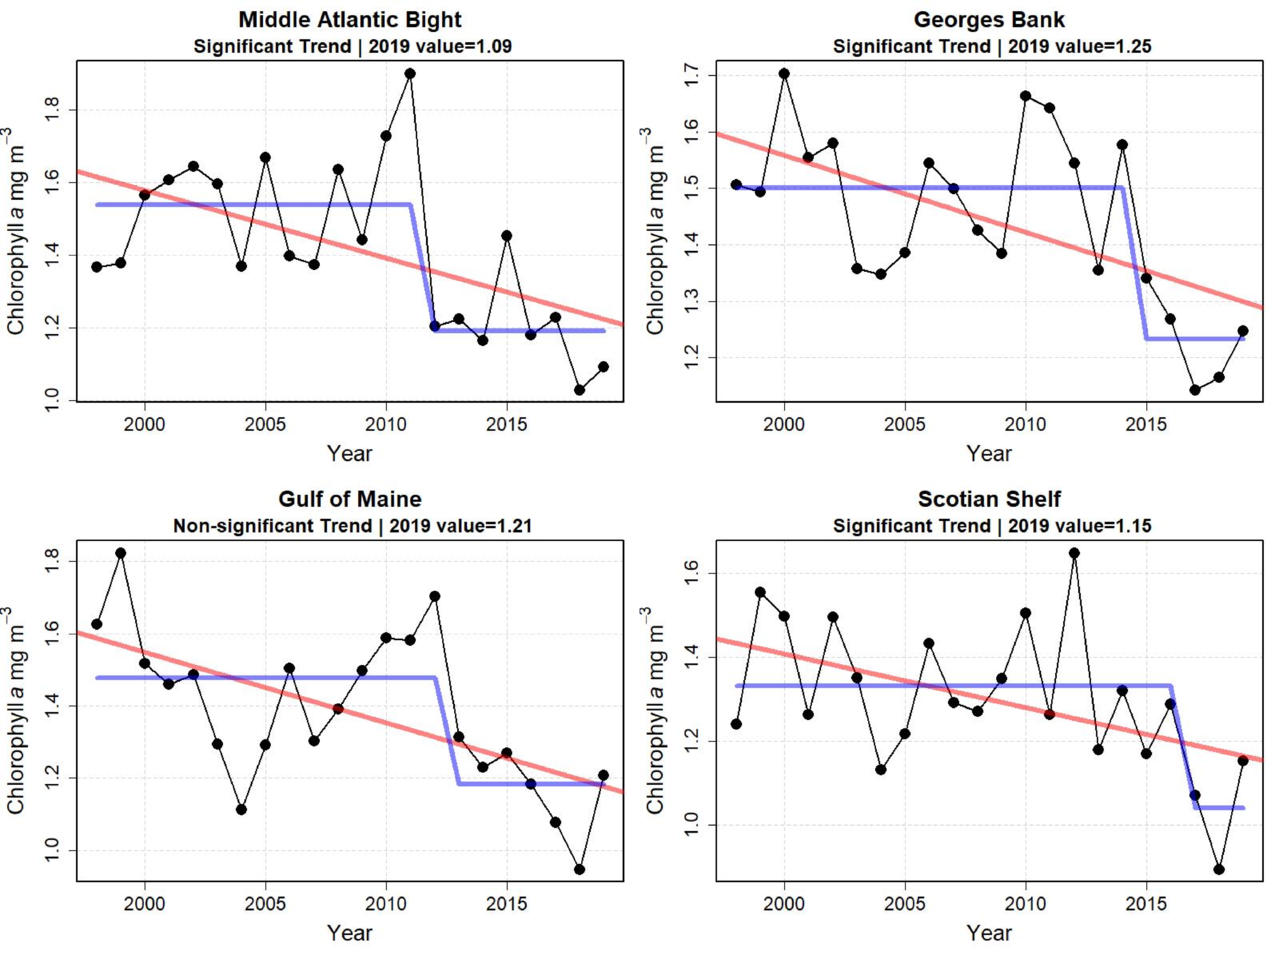 Graphs showing mean chlorophyll concentration for the last six months of the year from 1998 to 2019. Average chlorophyll concentrations during the last half of the year appear to have decreased in recent years in all subareas of the ecosystem. most dramatically in the Middle Atlantic Bight and Georges Bank areas. A change point in chlorophyll concentration occurred in all areas within the last decade or so.